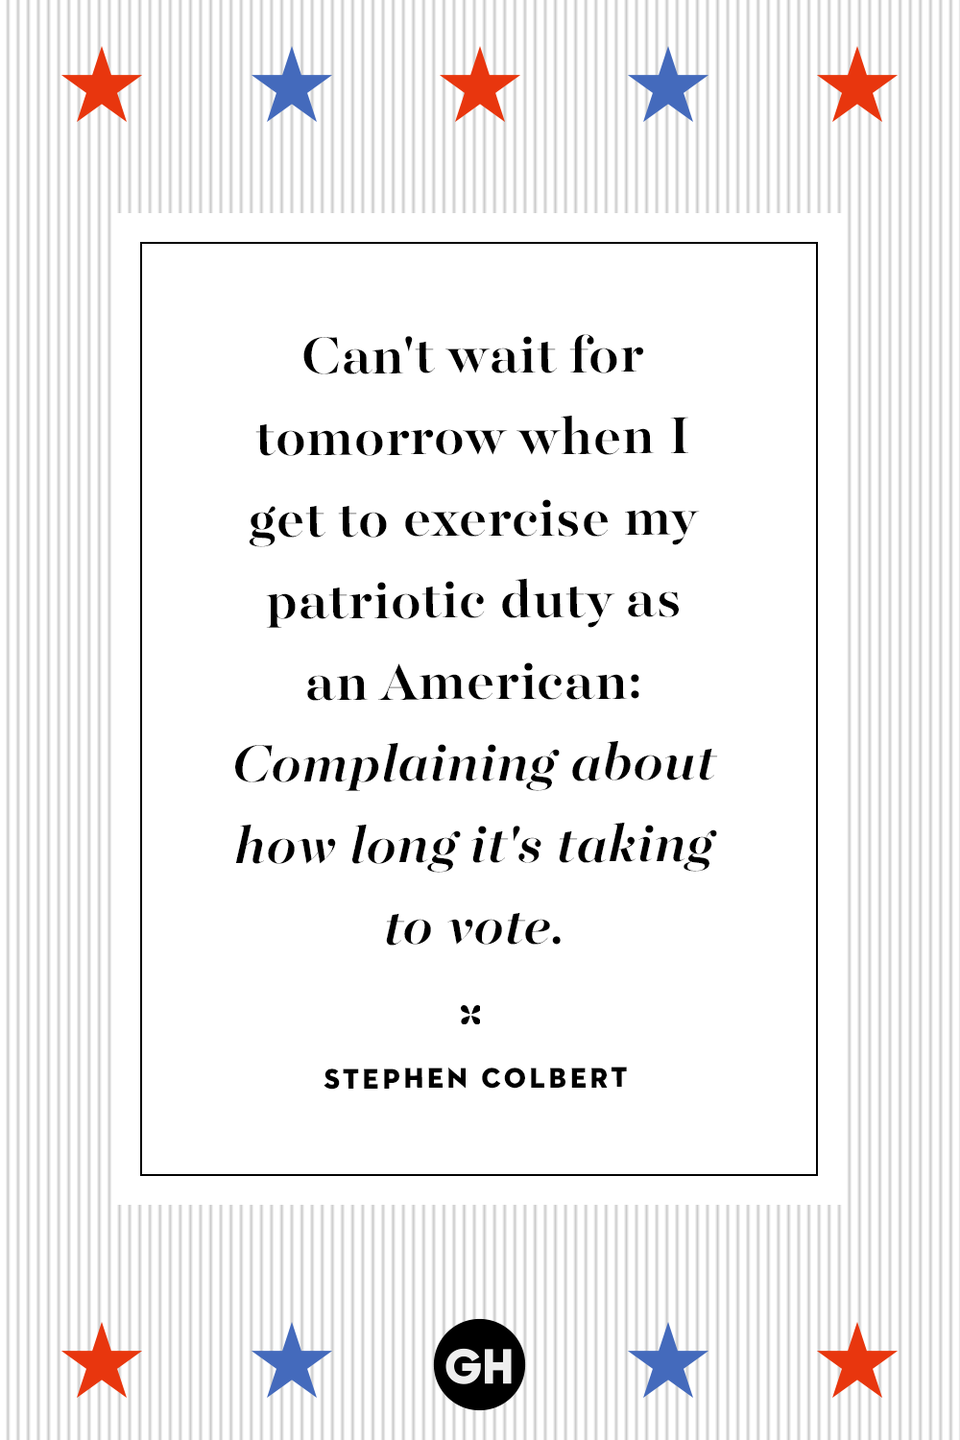 <p>Can't wait for tomorrow when I get to exercise my patriotic duty as an American: Complaining about how long it's taking to vote.</p>